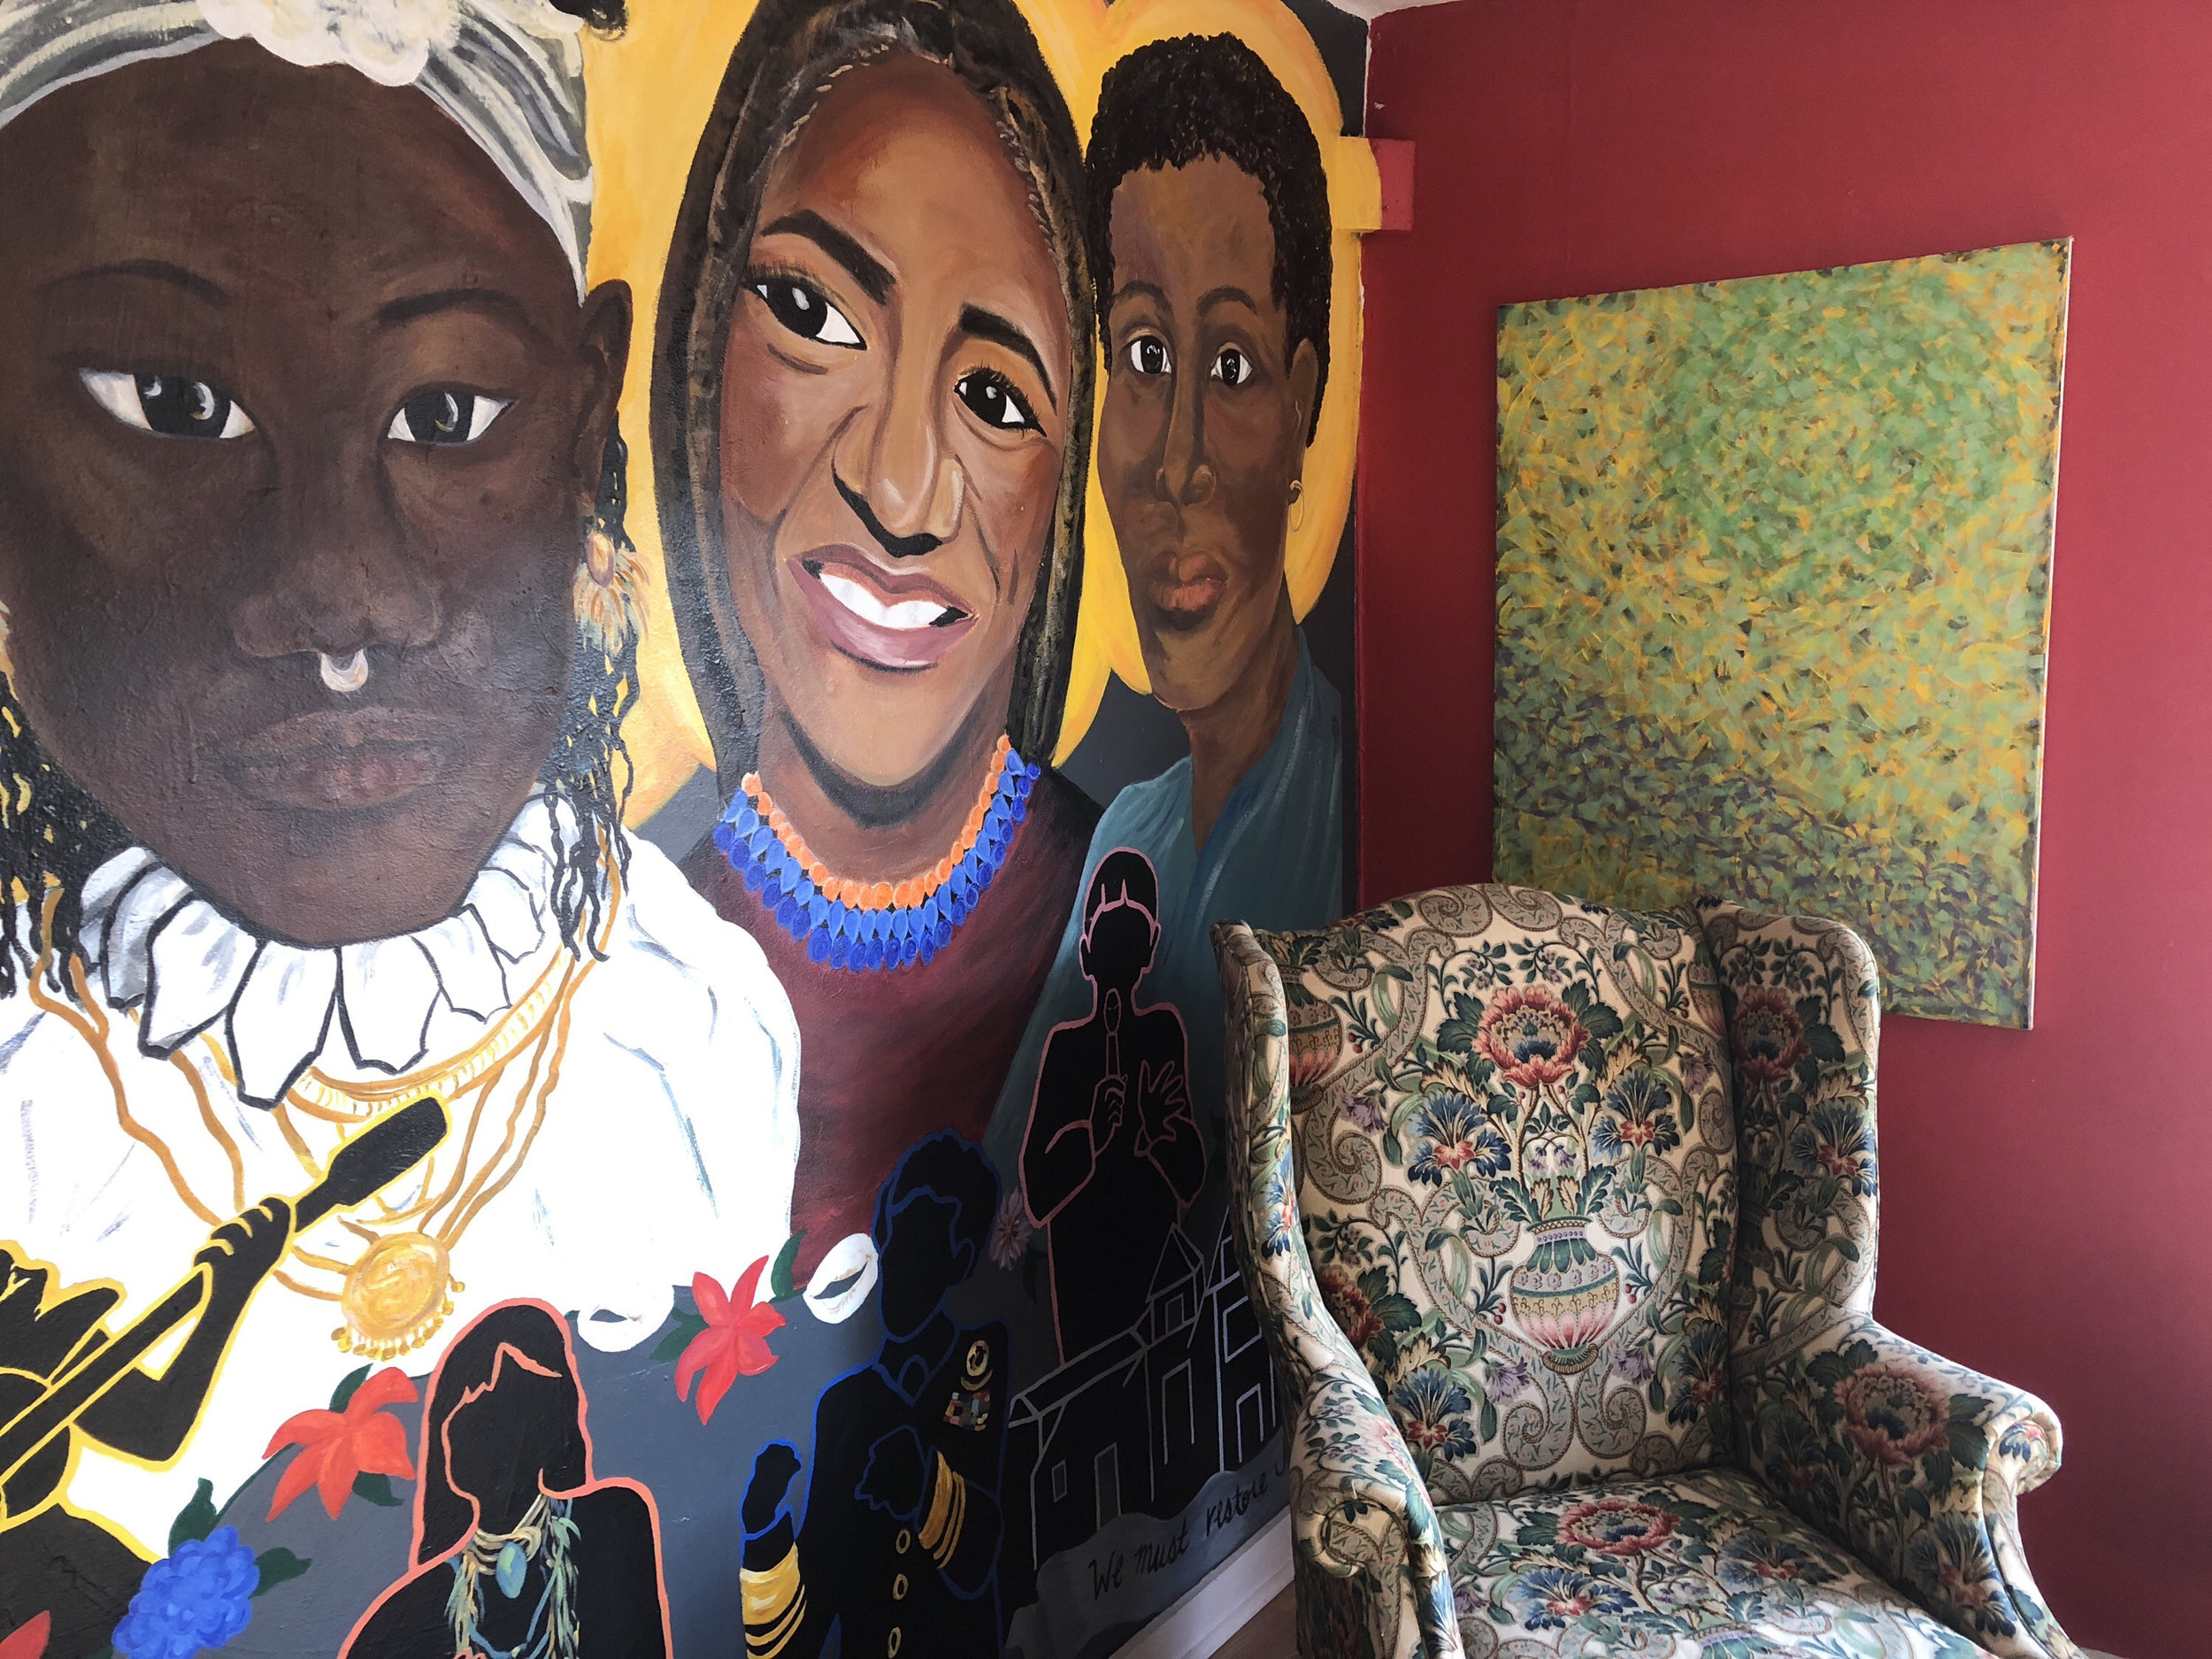 Mural Painting and Comfy Chair